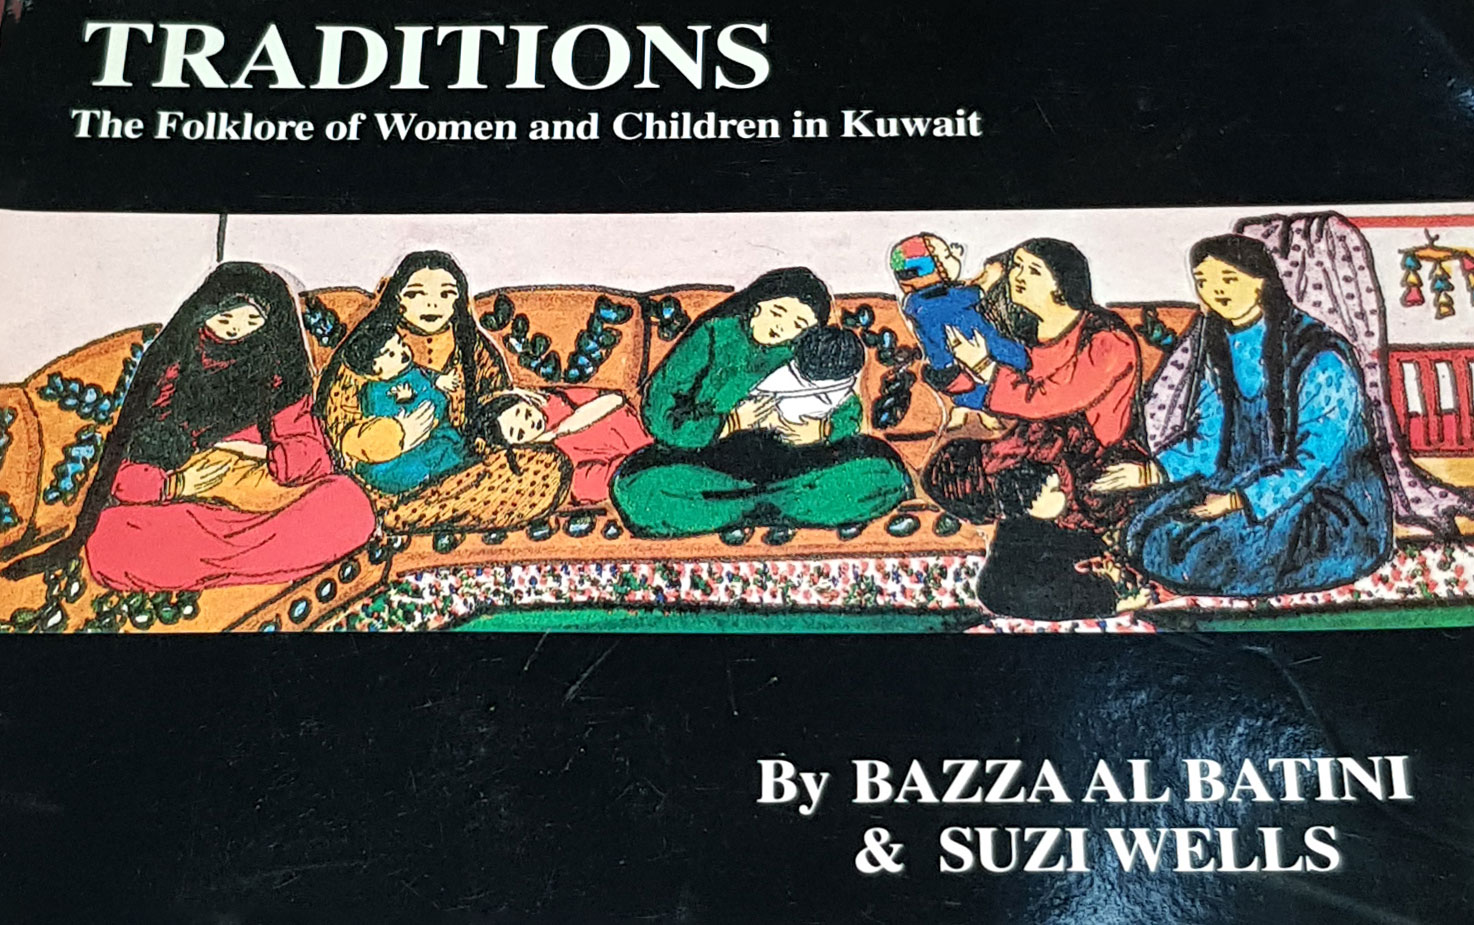 Traditions: The Folklore of Women and Children in Kuwait